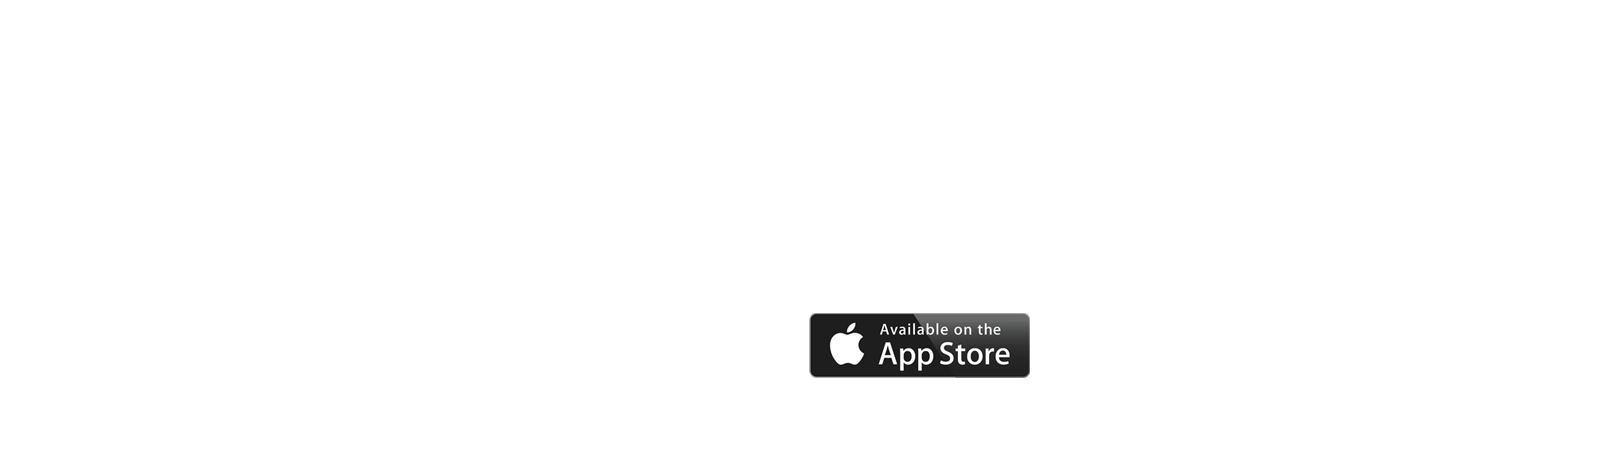 apple app store logo click to download